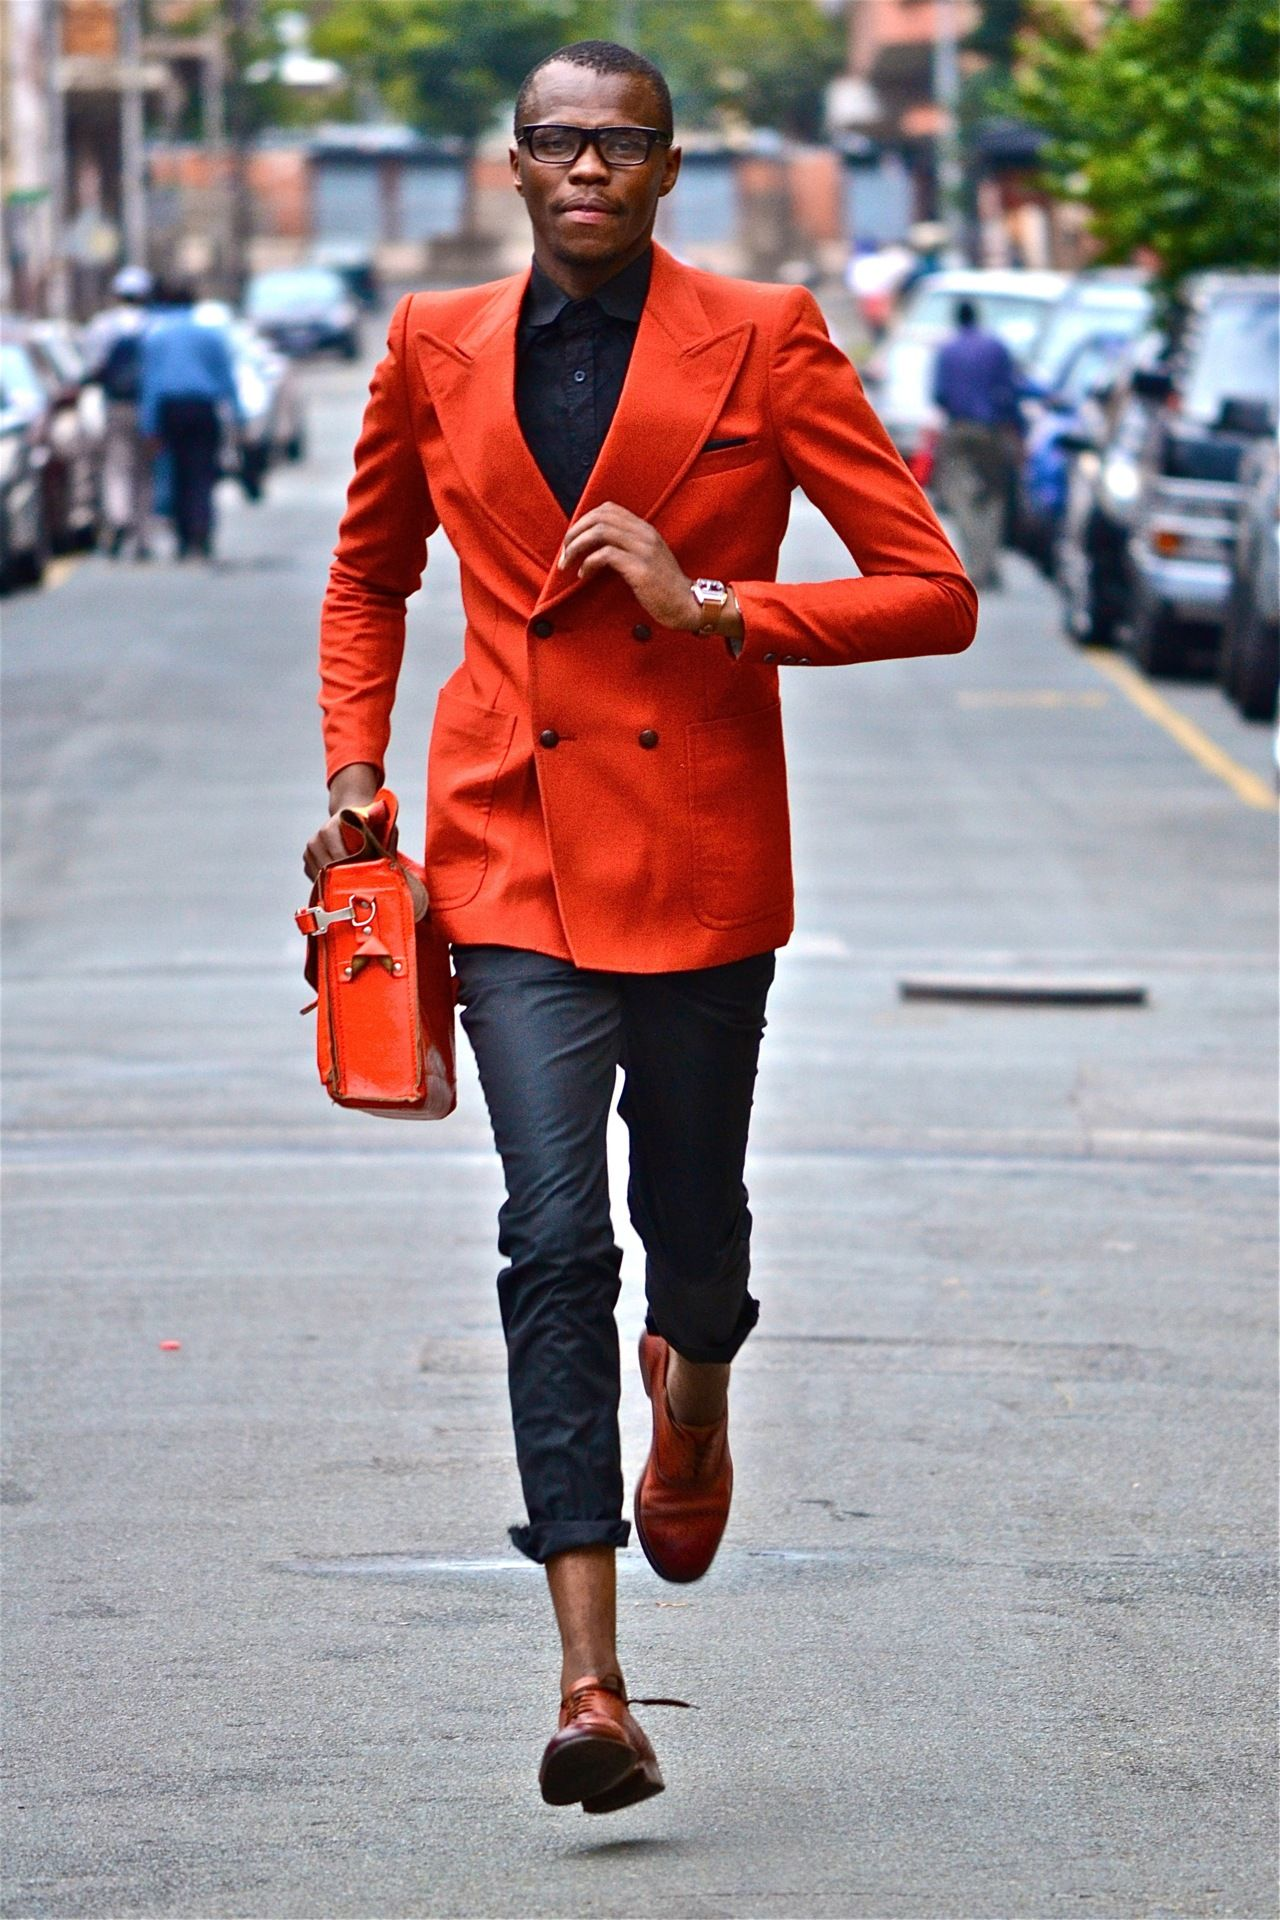 South African Men Fashion Images Galleries With A Bite